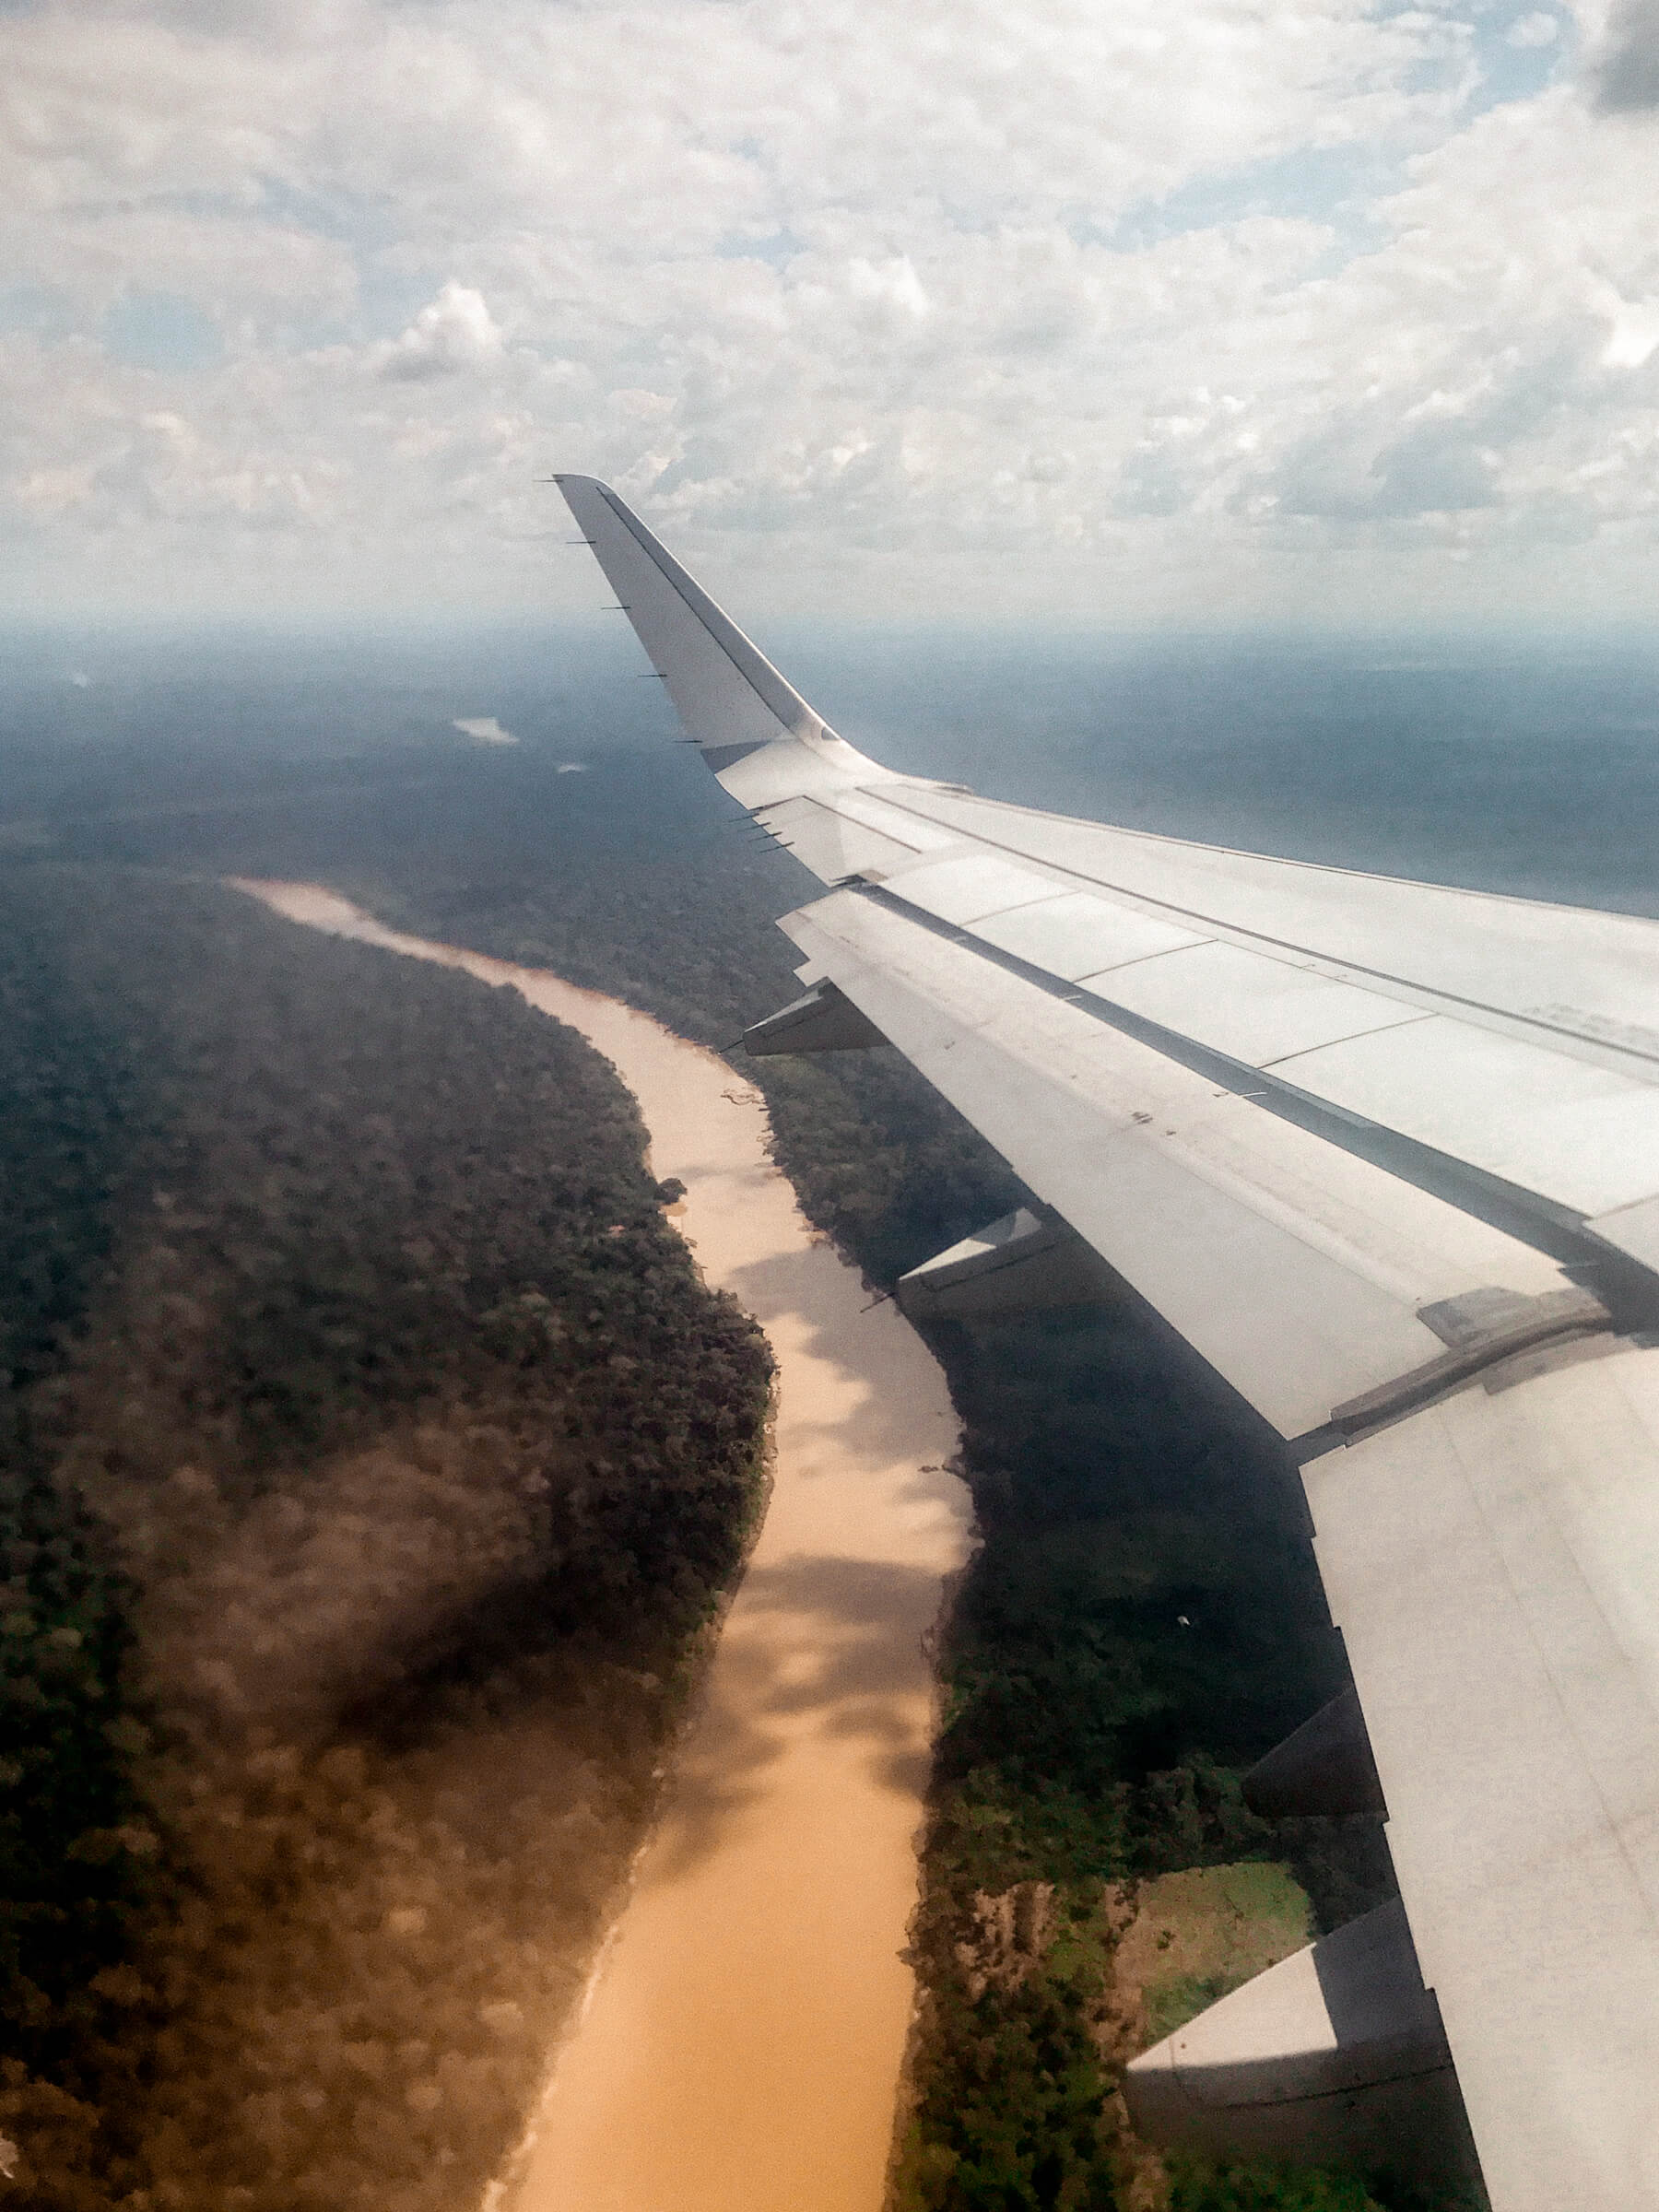 The wing of an aeroplane flying above the Amazon Rainforest and Amazon River